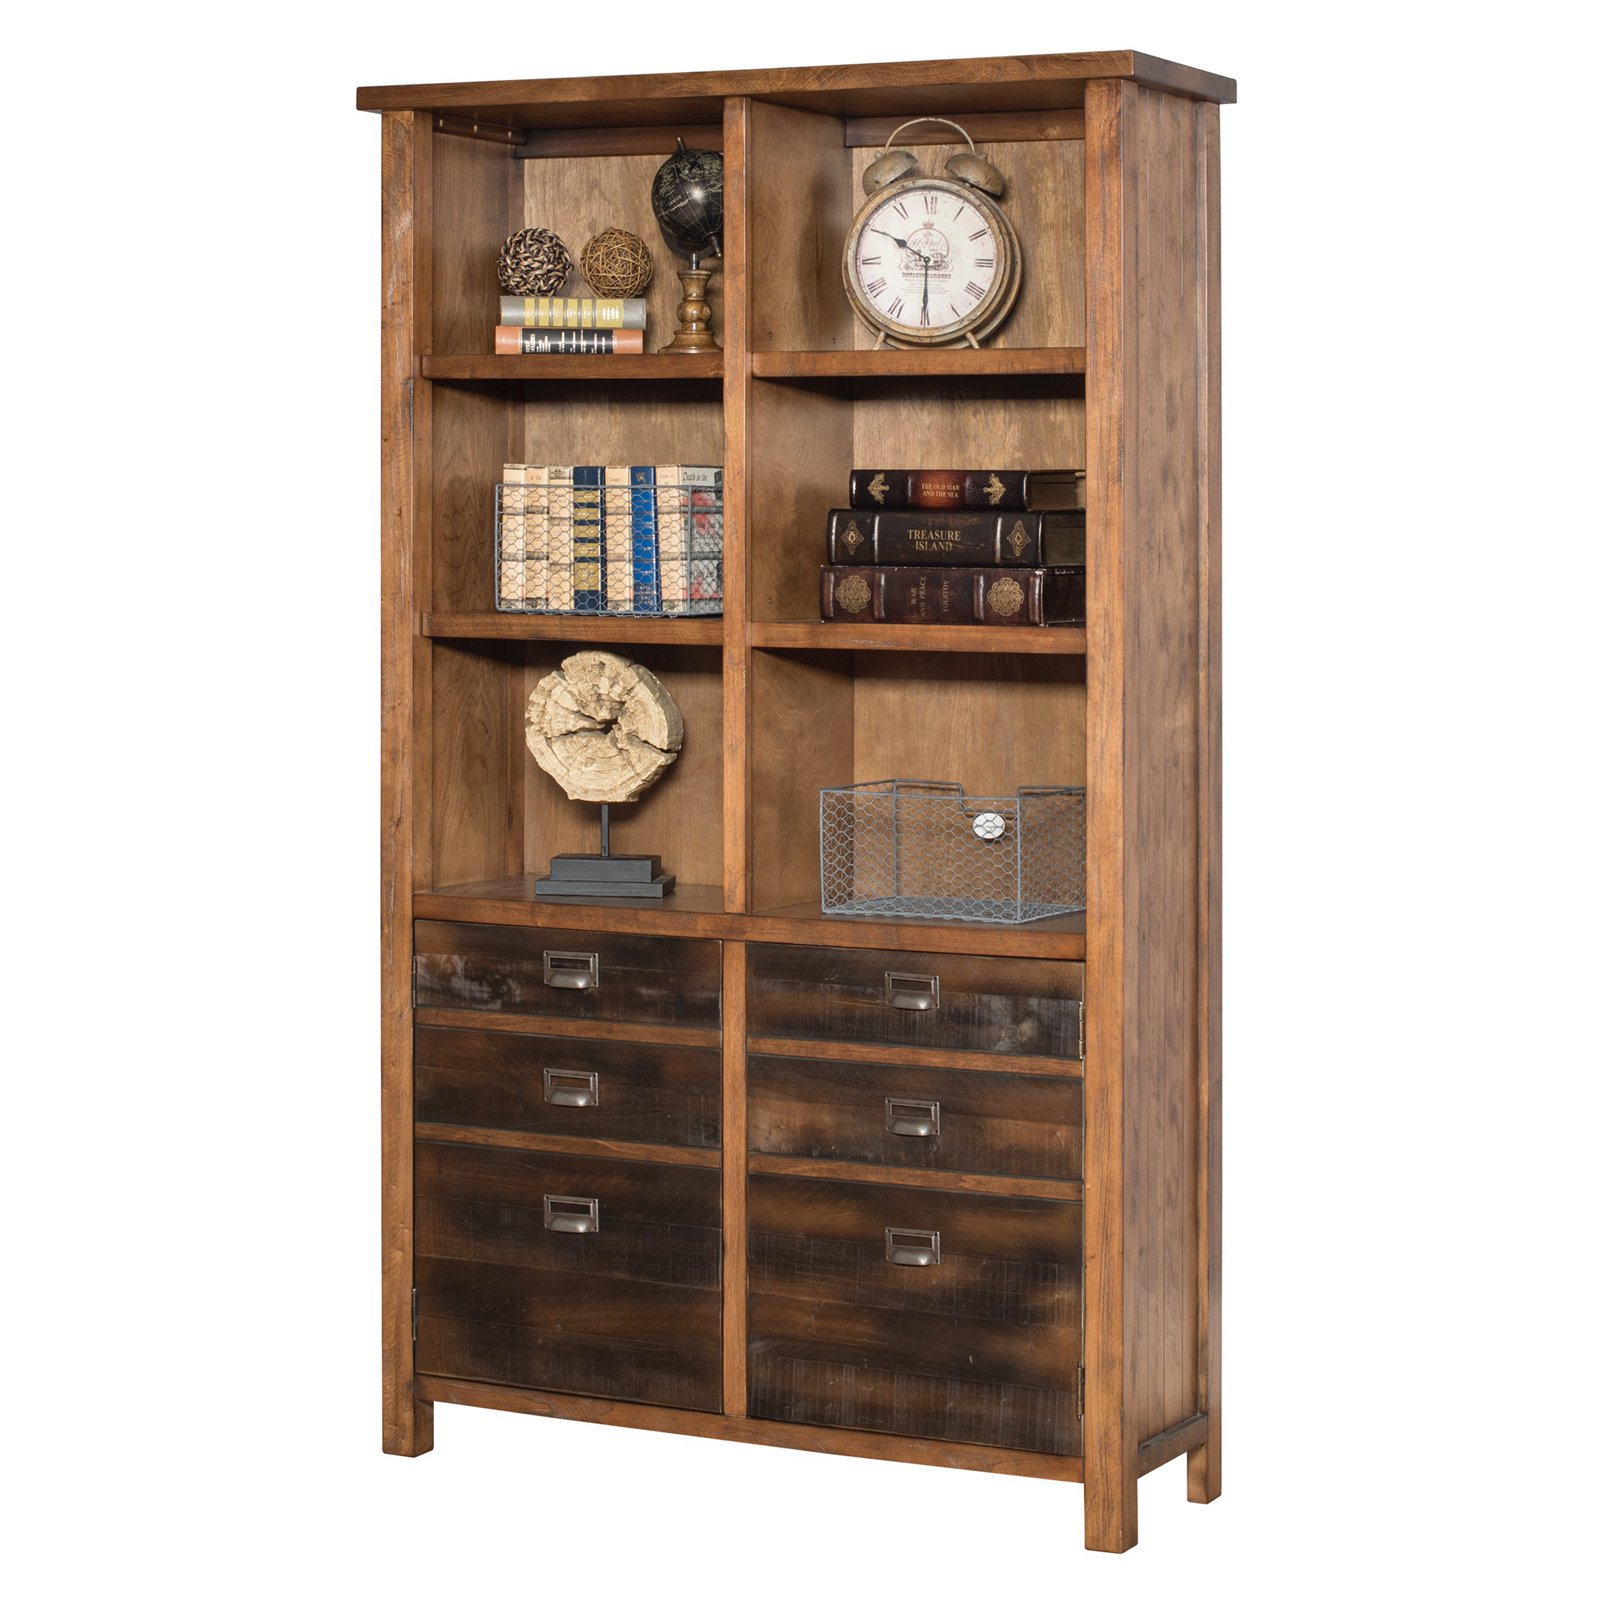 Martin Home Furnishings Heritage 72'' Standard Bookcase